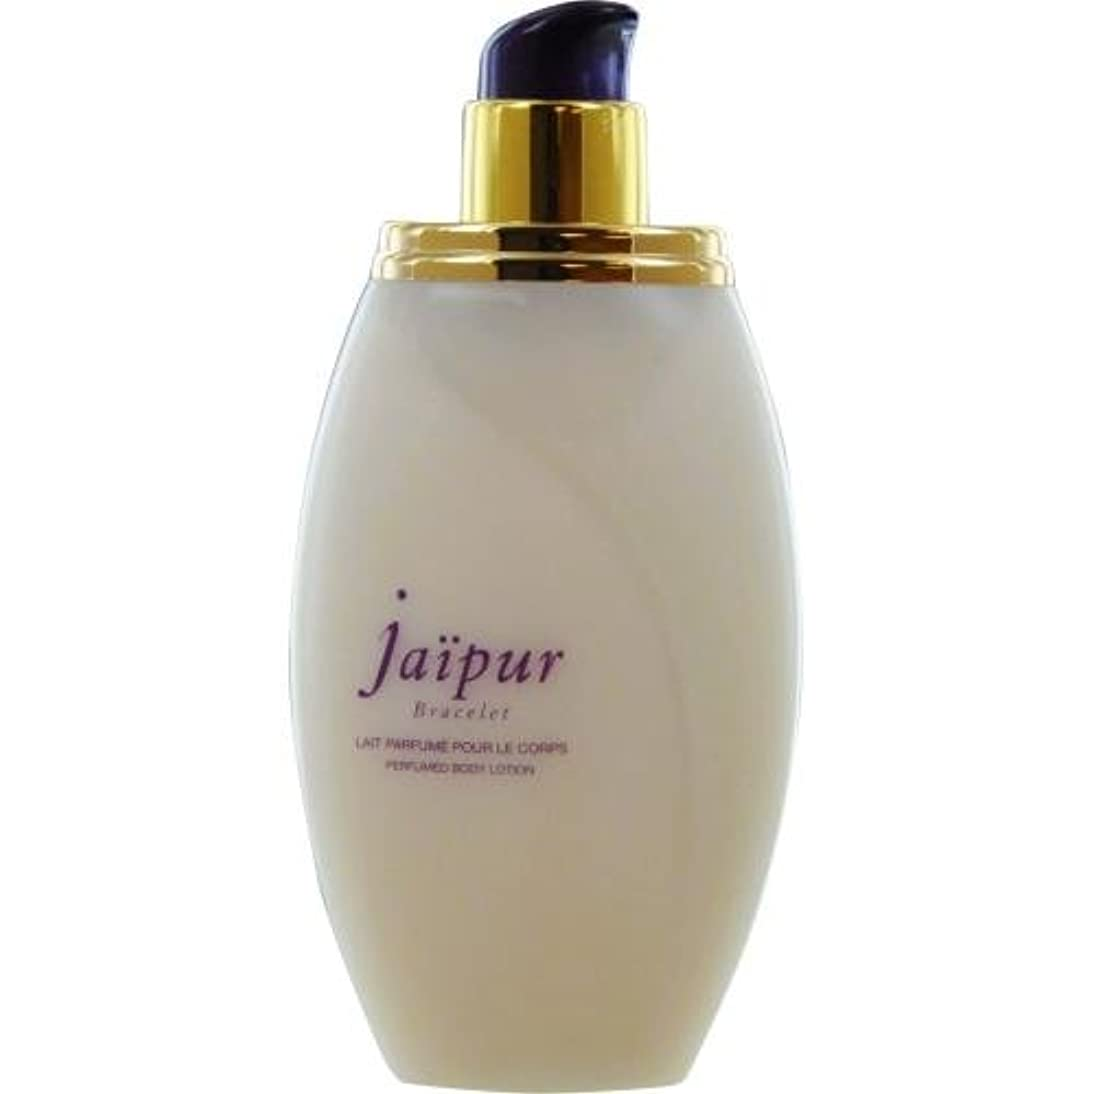 浮く戦略振り向くJaipur Bracelet Perfumed Body Lotion